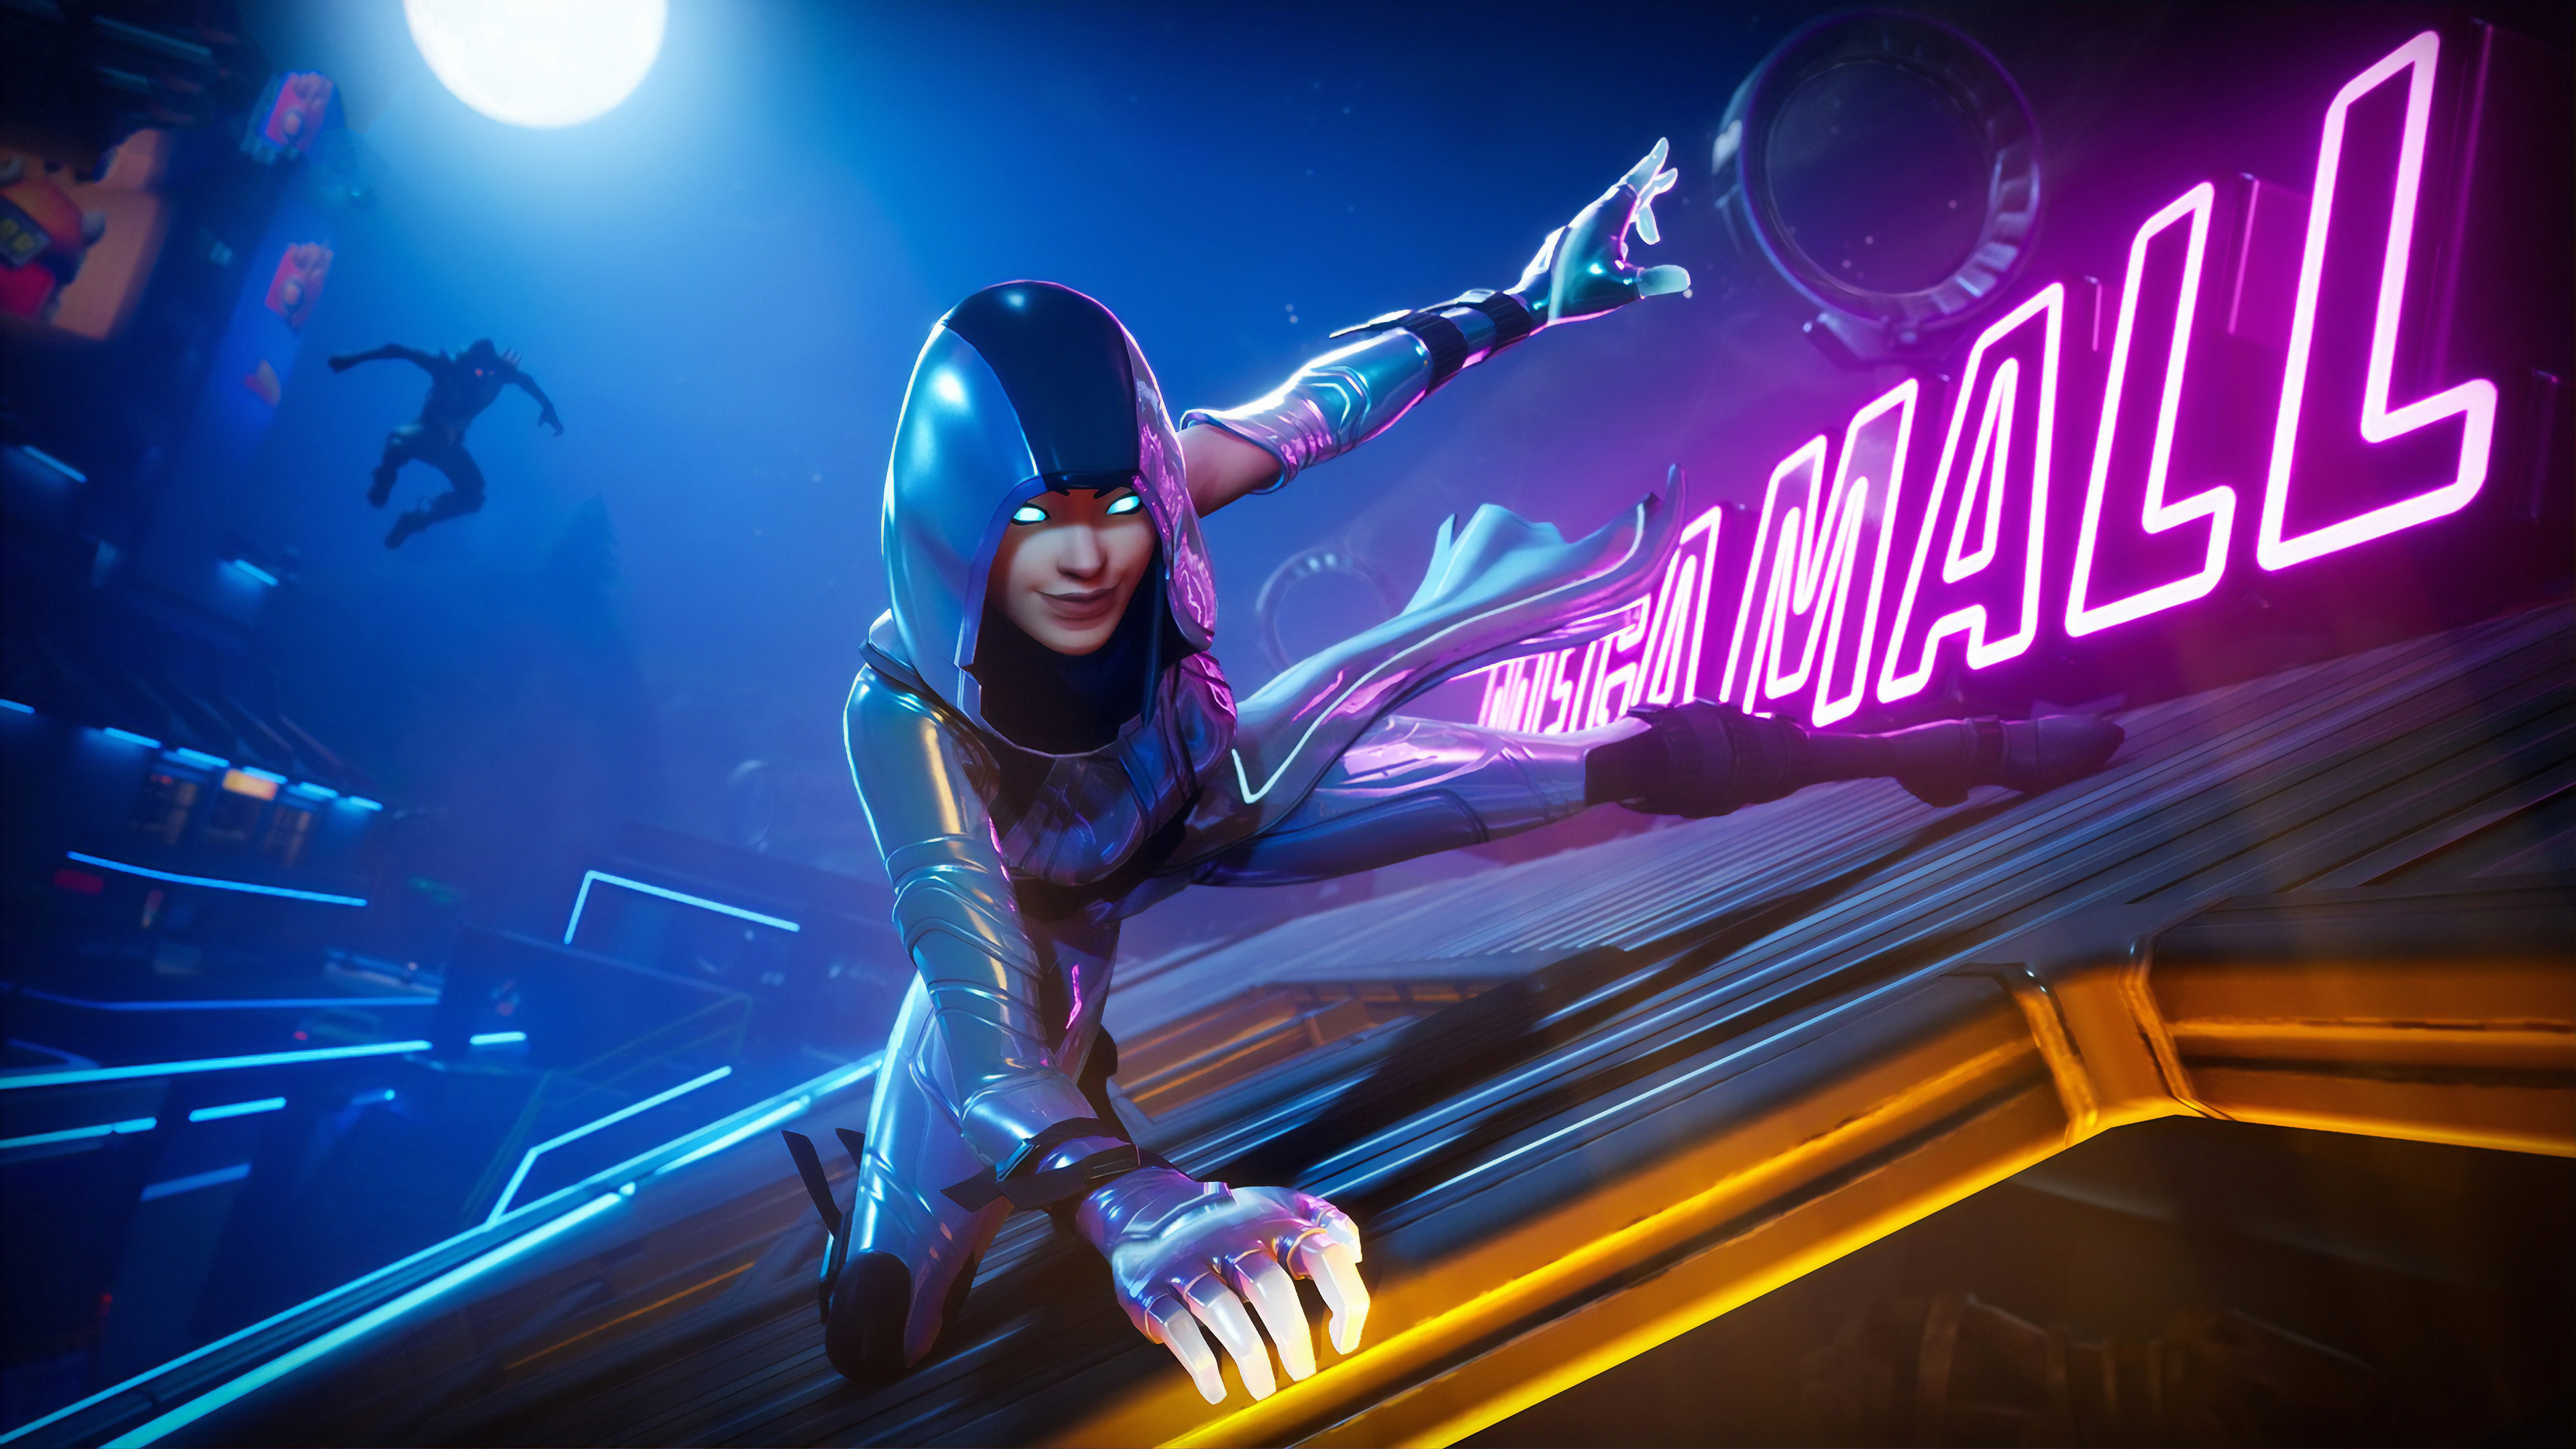 1920x1200 Fortnite 2019 Season 1200p Wallpaper Hd Games 4k Wallpapers Images Photos And Background